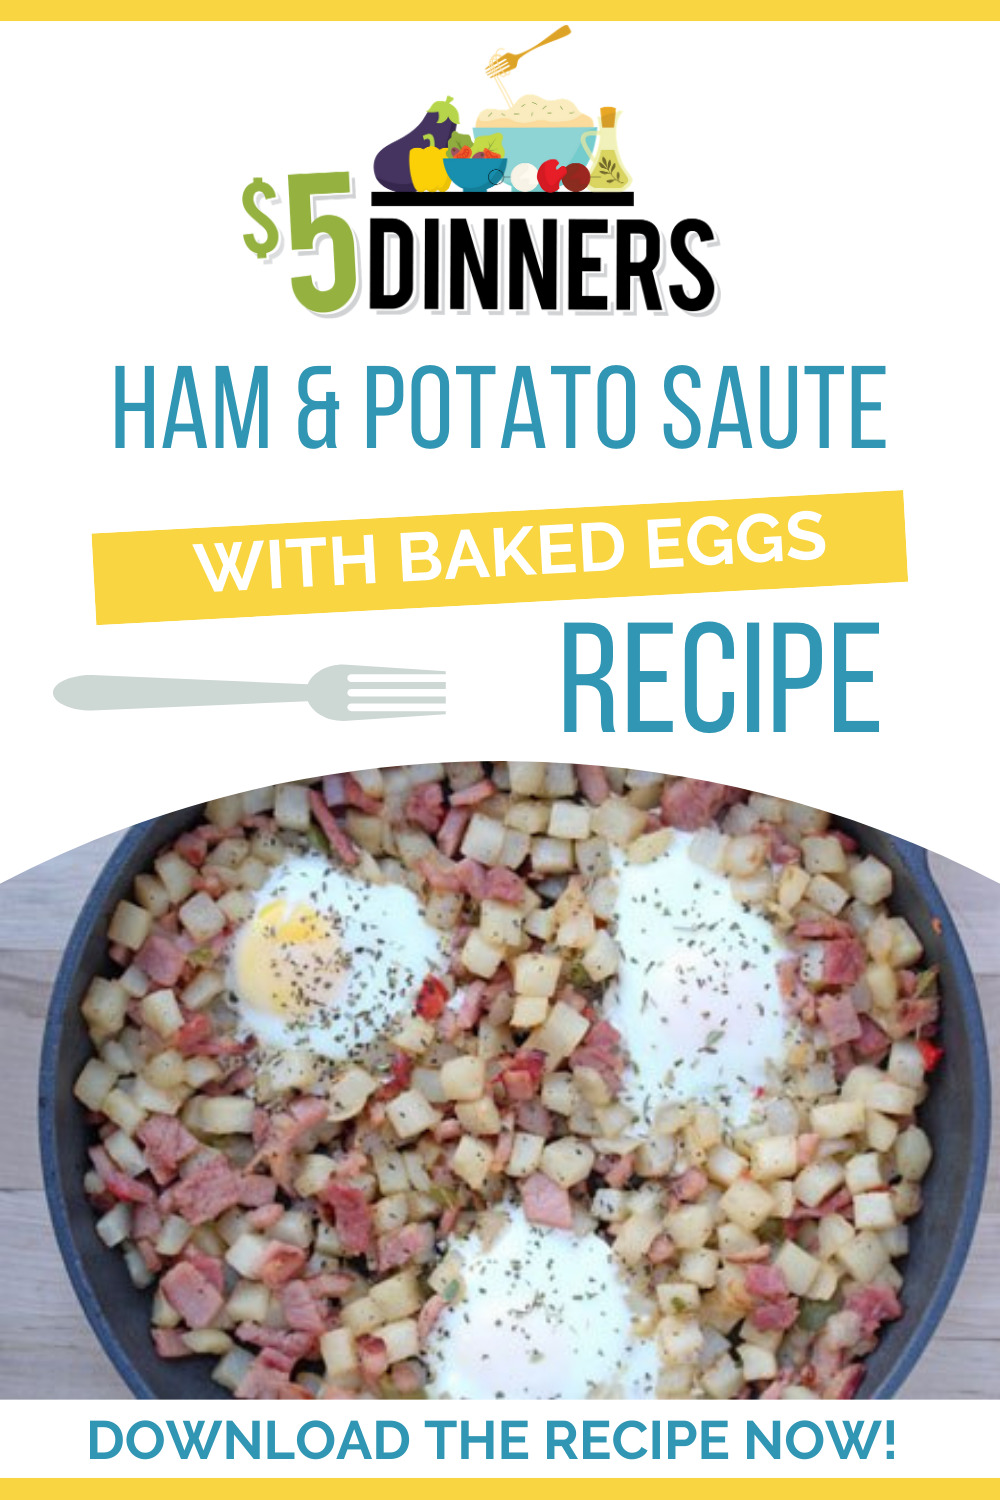 ham and potato saute with baked eggs